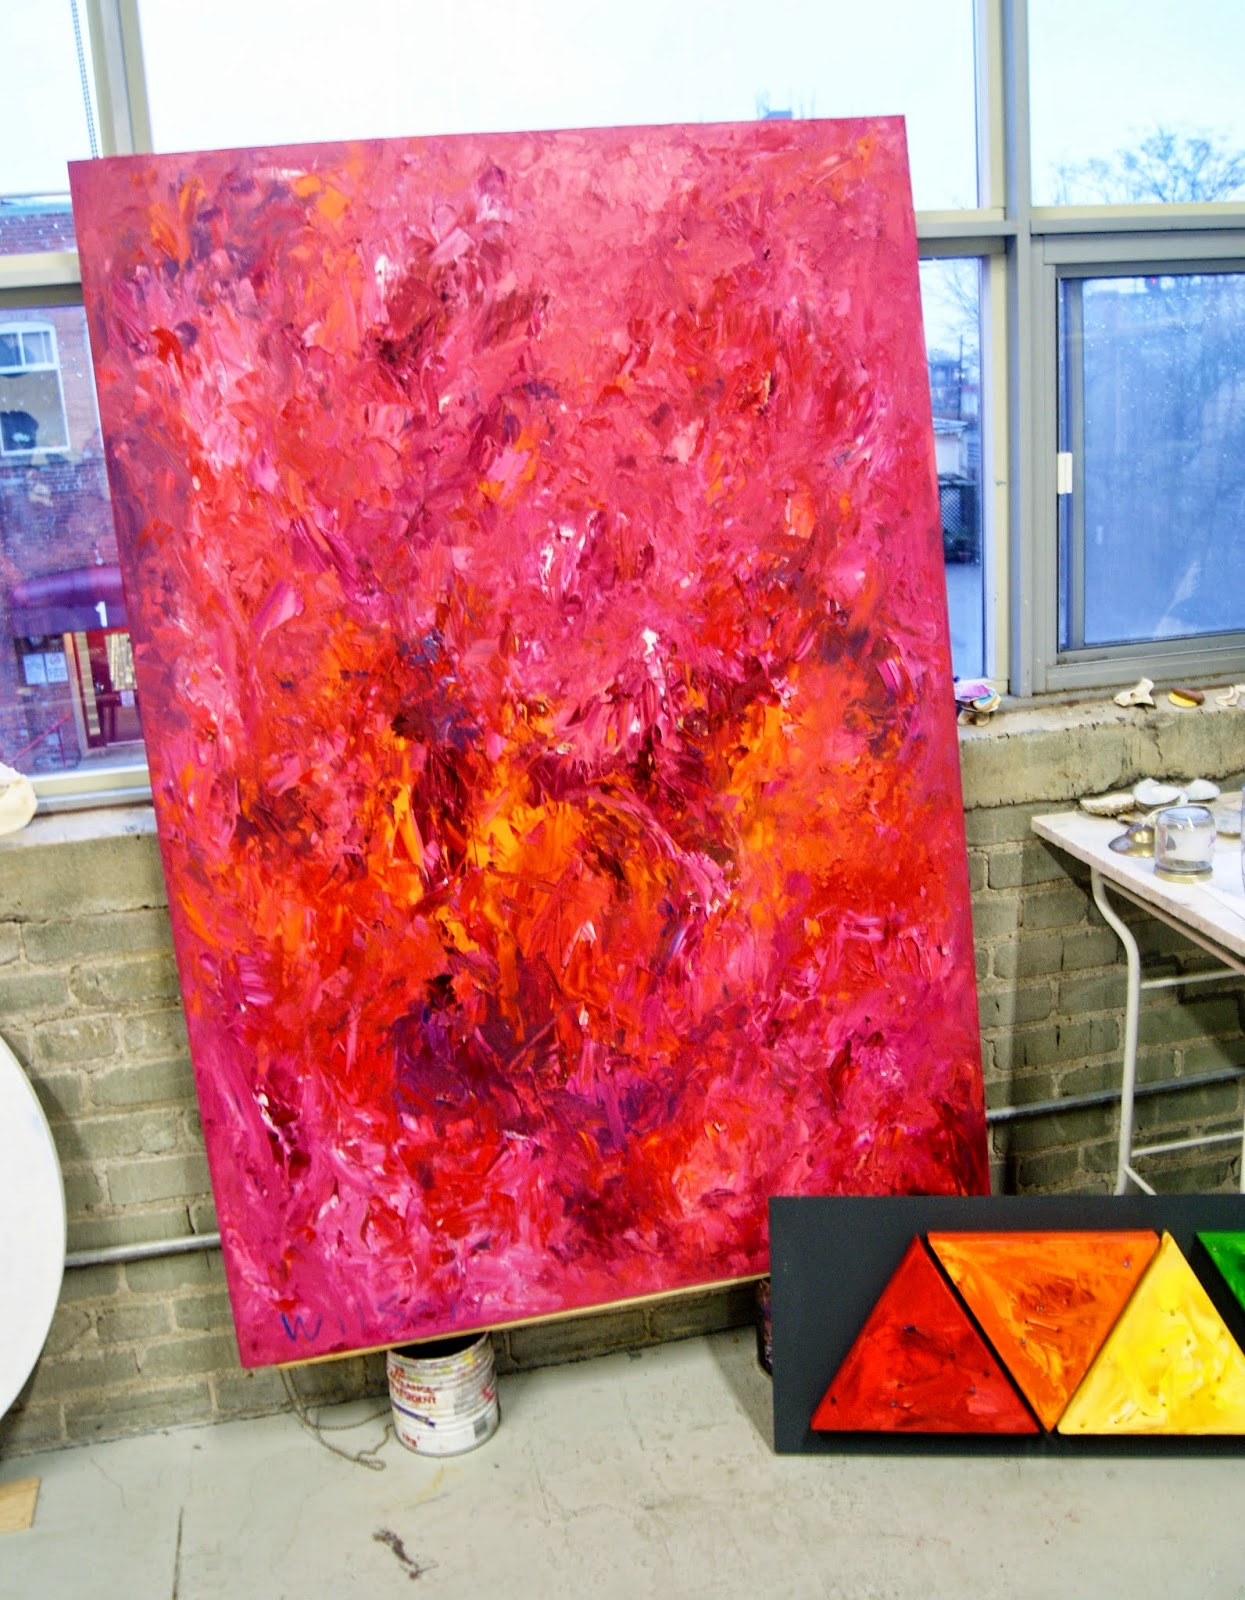 Canadian Abstract Artist Candace Wilson in her Toronto Studio surrounded by her Chakra healing paintings, culture, art, artmatters, circle, The Purple Scarf, Melanie.ps, Ontario, Canada westend, health, hospital